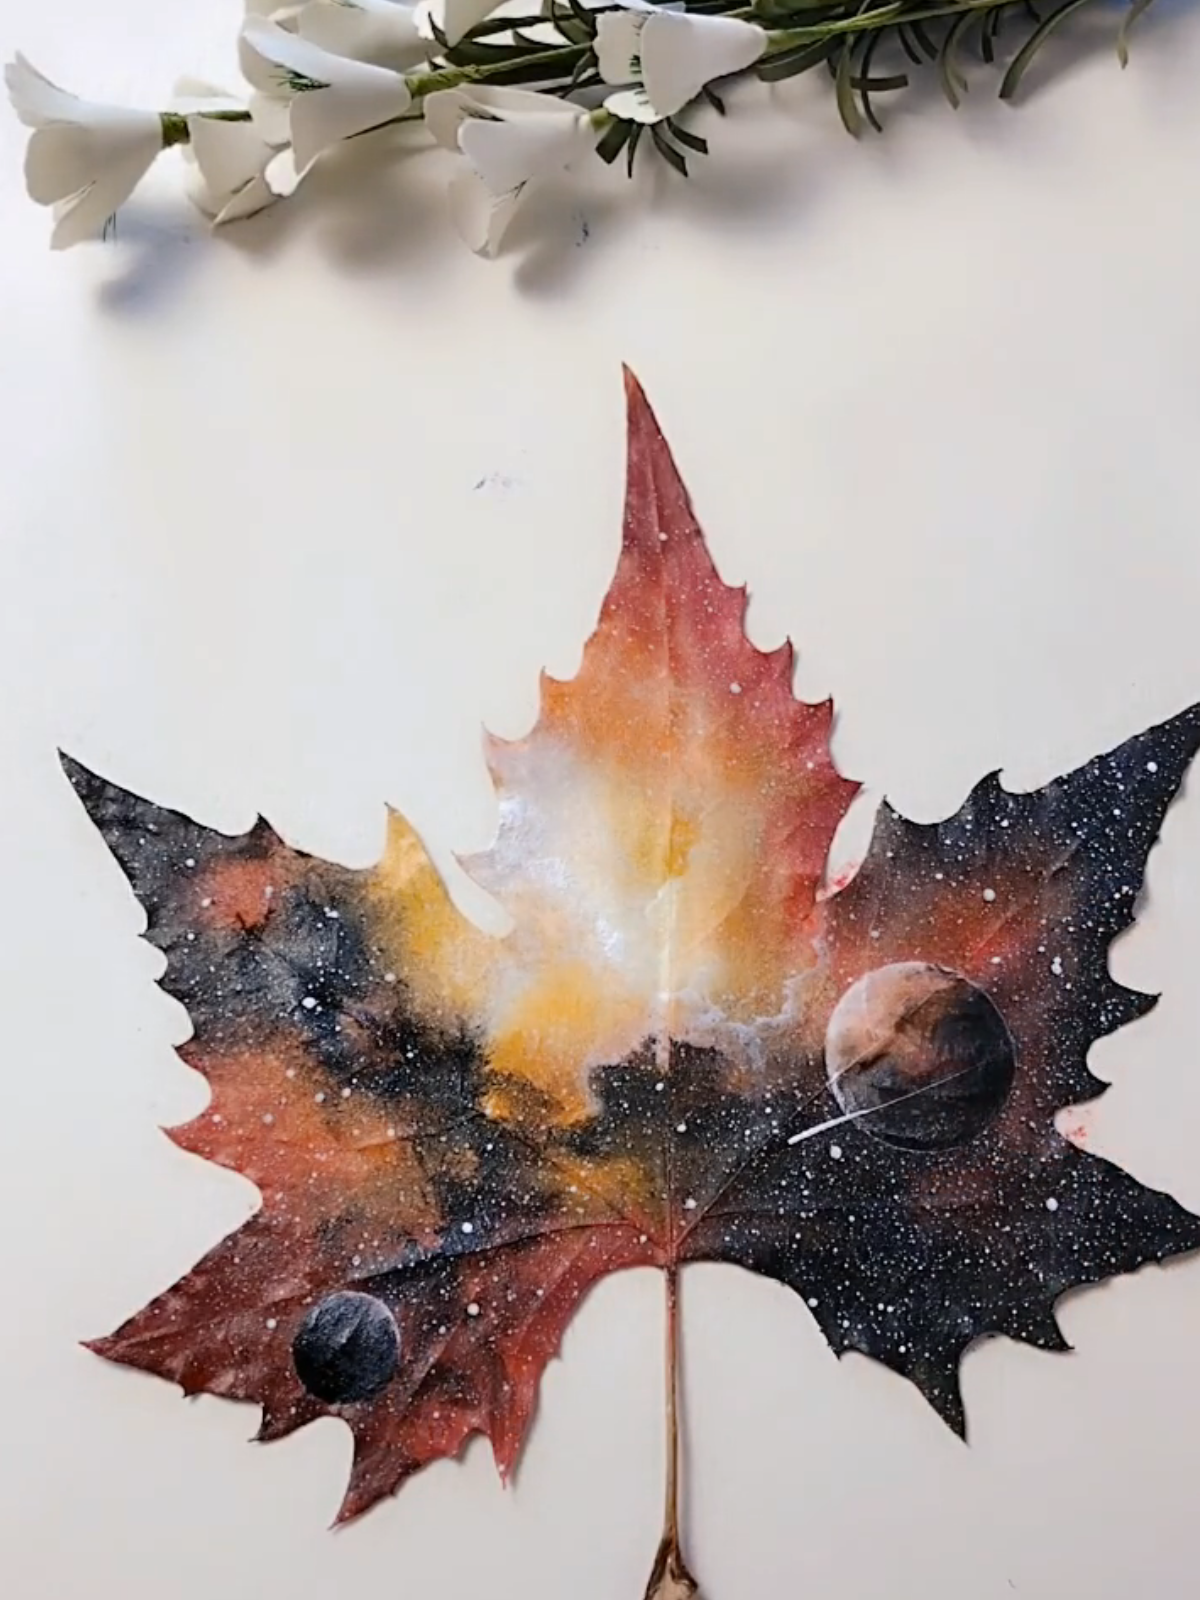 7 Easy Incredible Art On Leaves Leaf Painting Ideas For Home Decor Painted Leaves Art Painting Leaf Art